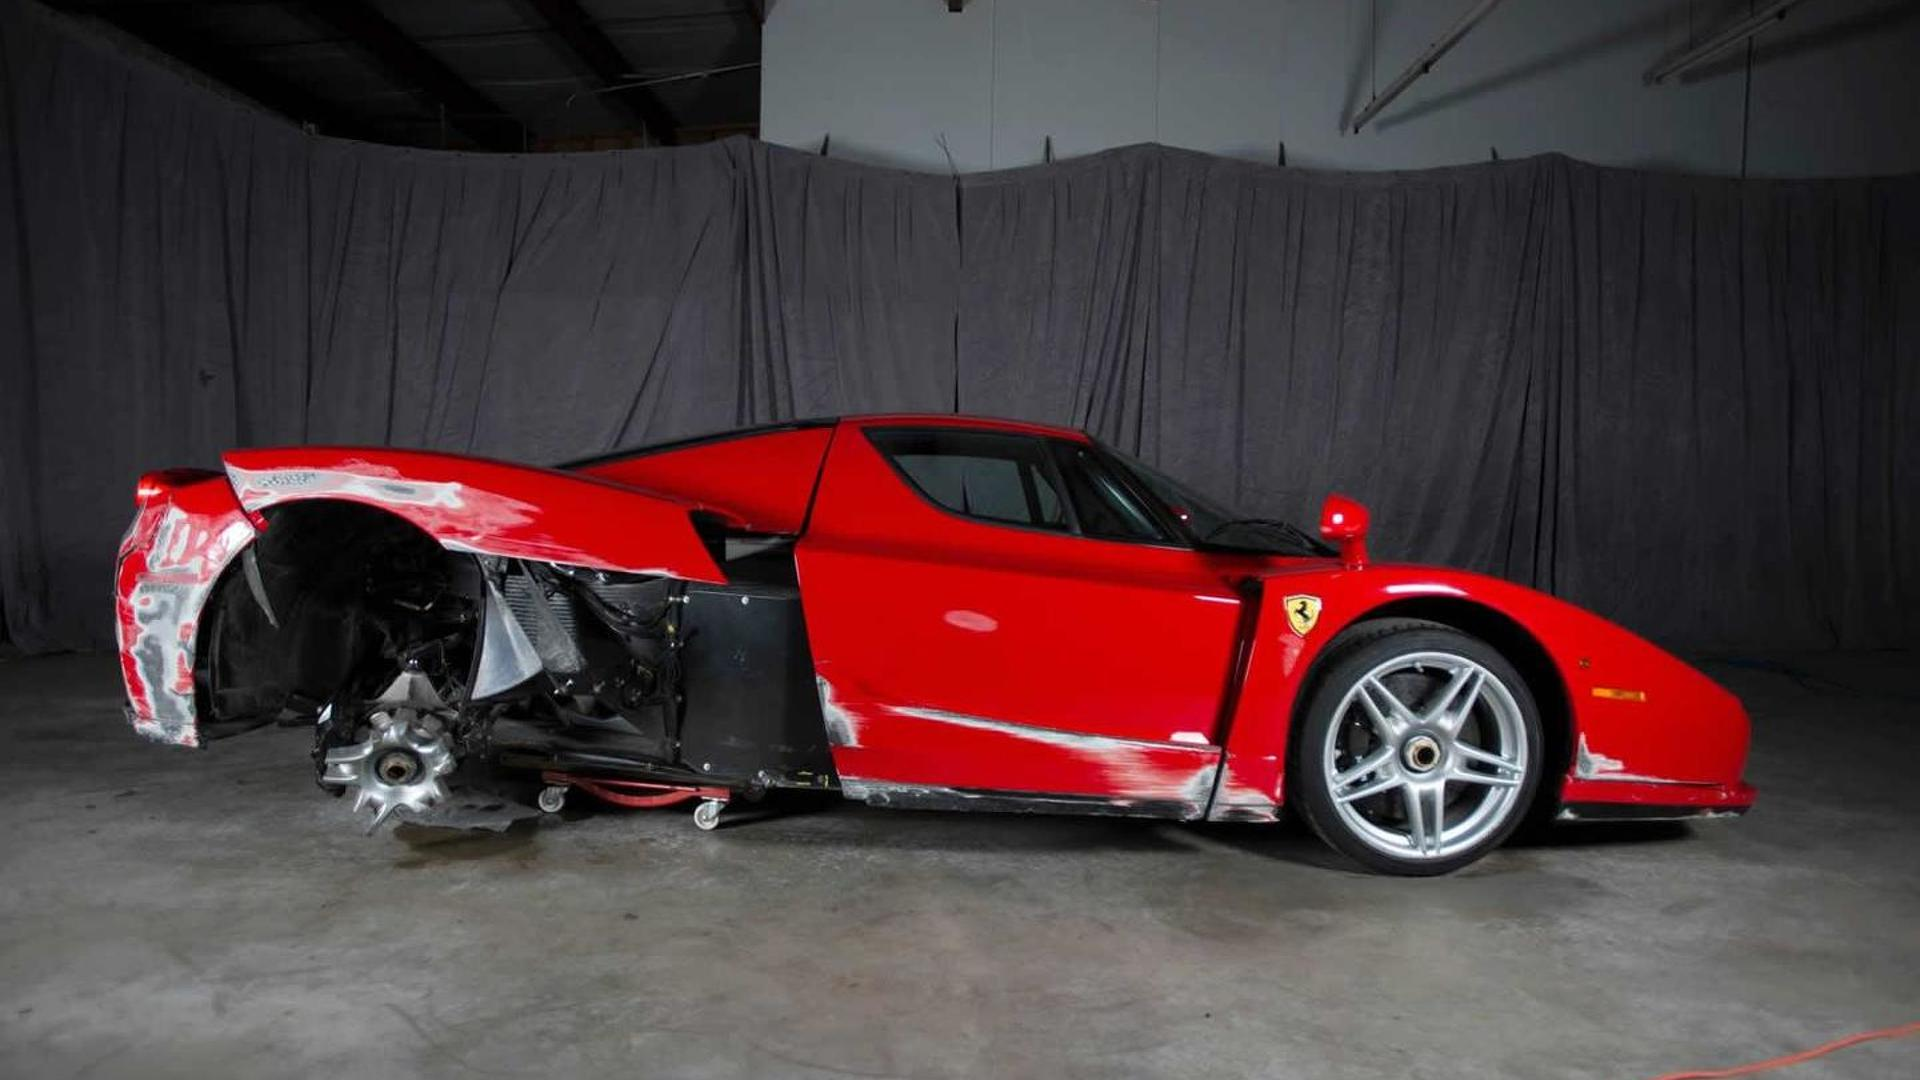 damaged 2003 ferrari enzo being auctioned online, currently at